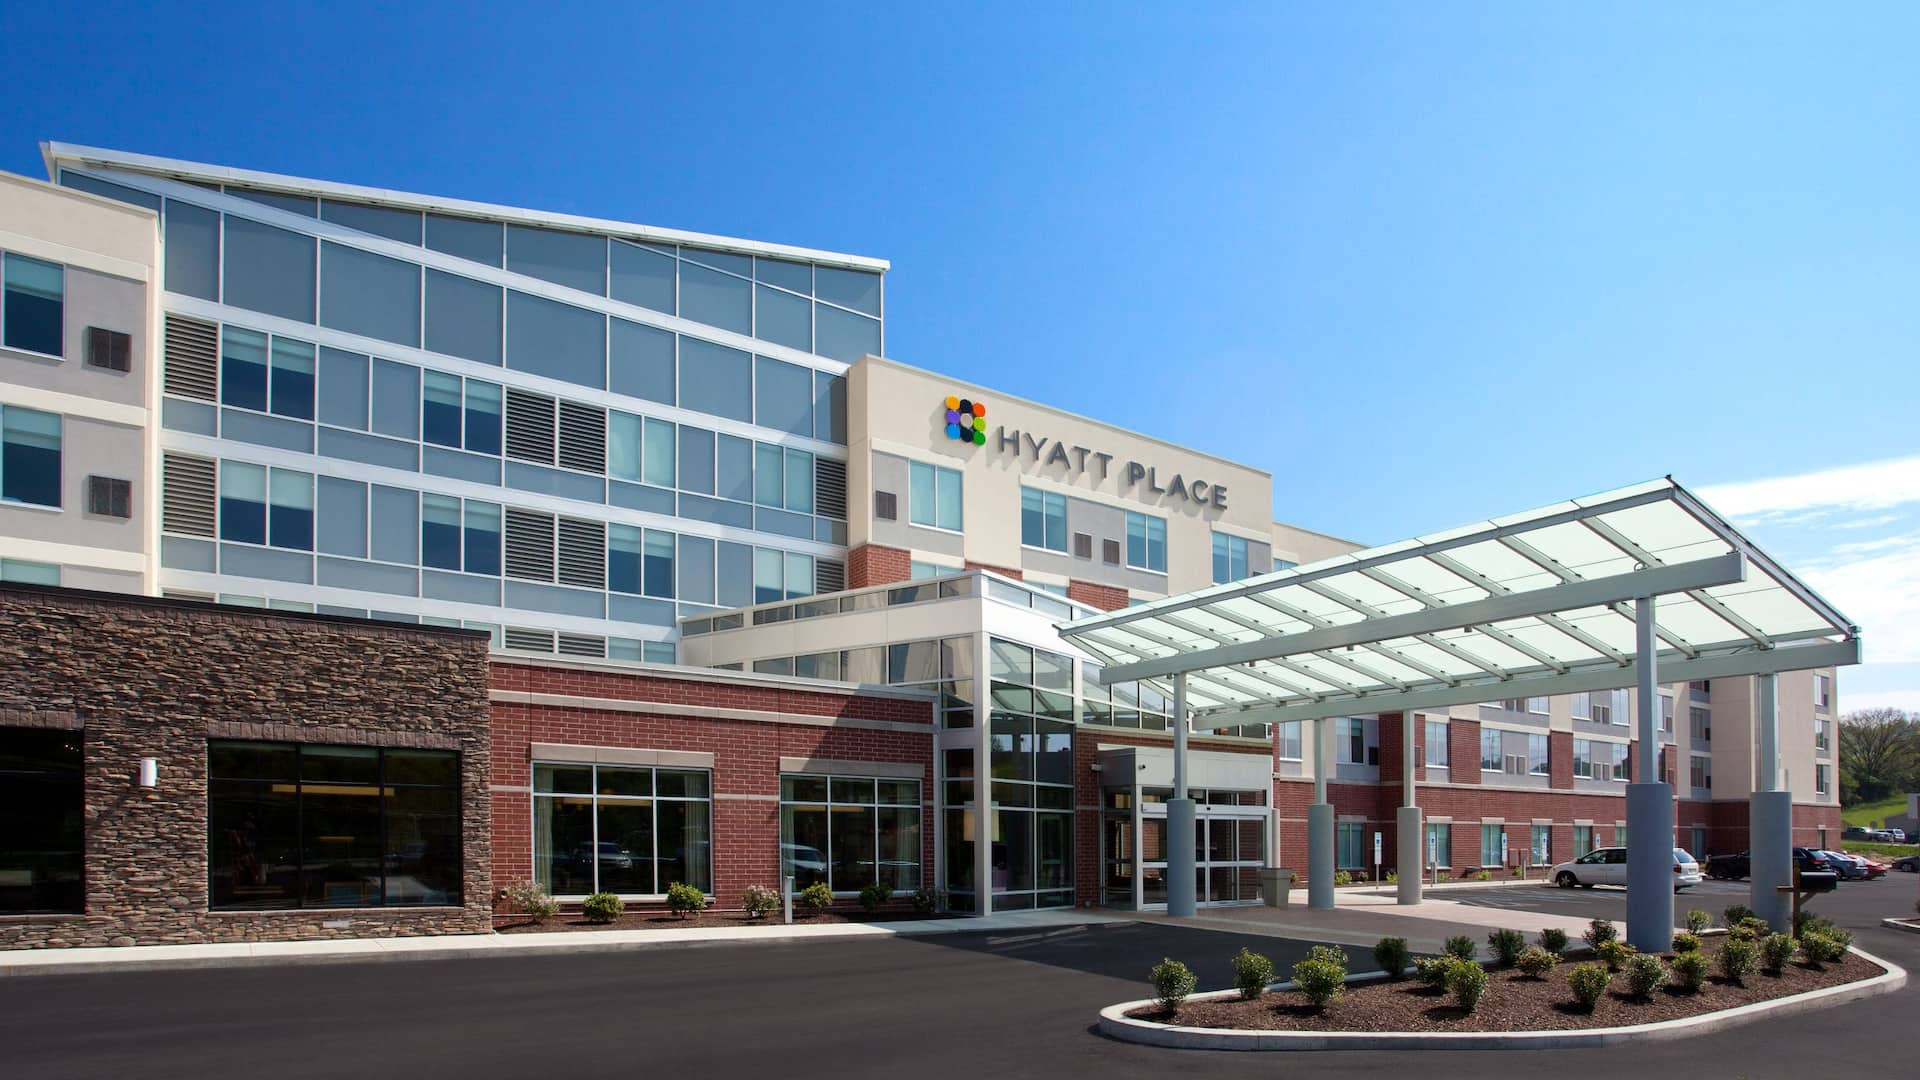 Hyatt Place Pittsburgh Meadows Racetrack and Casino Exterior Day